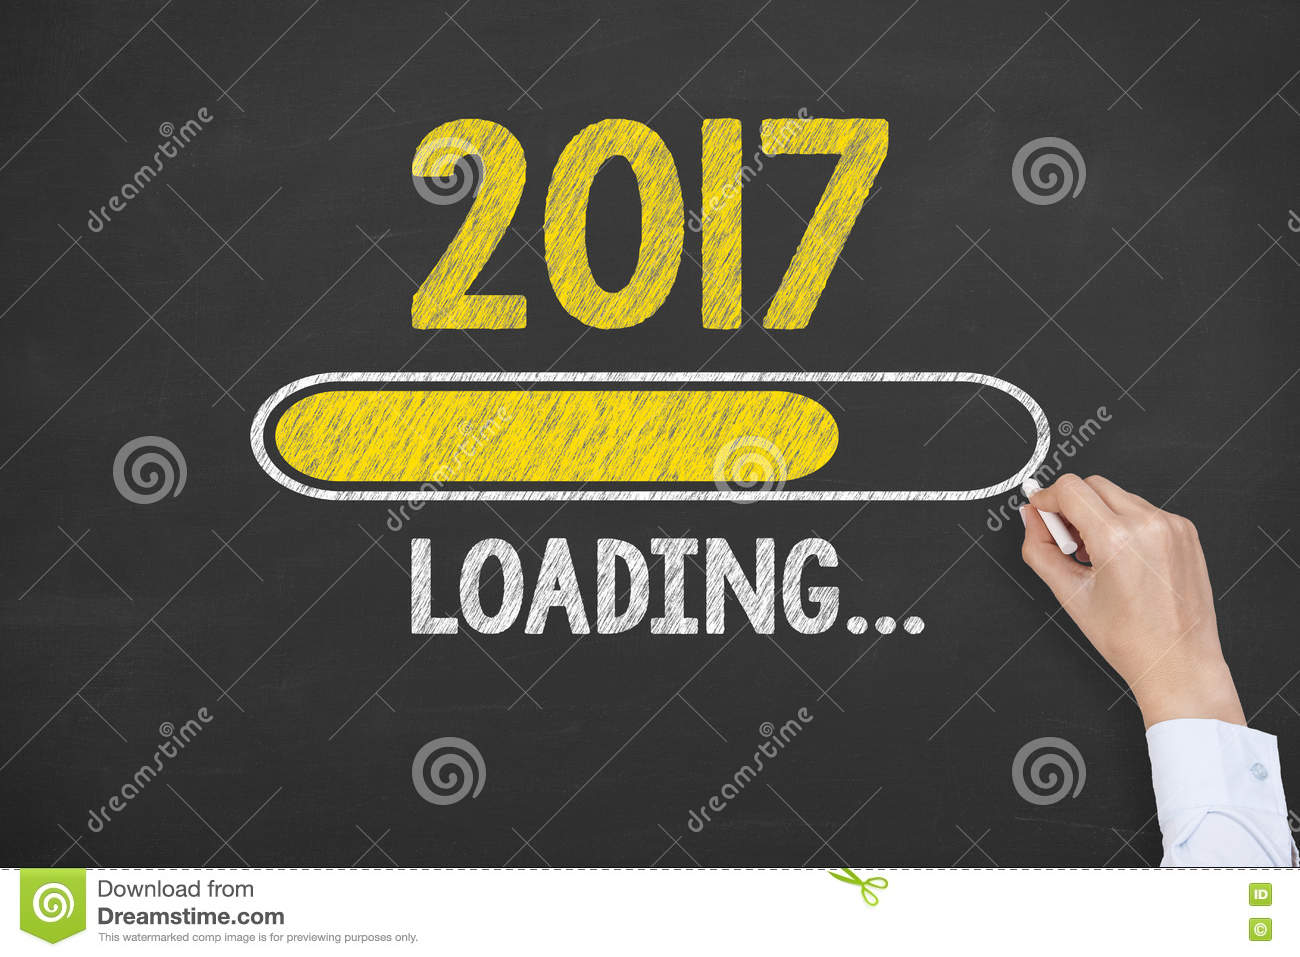 new year 2017 loading technology on chalkboard background